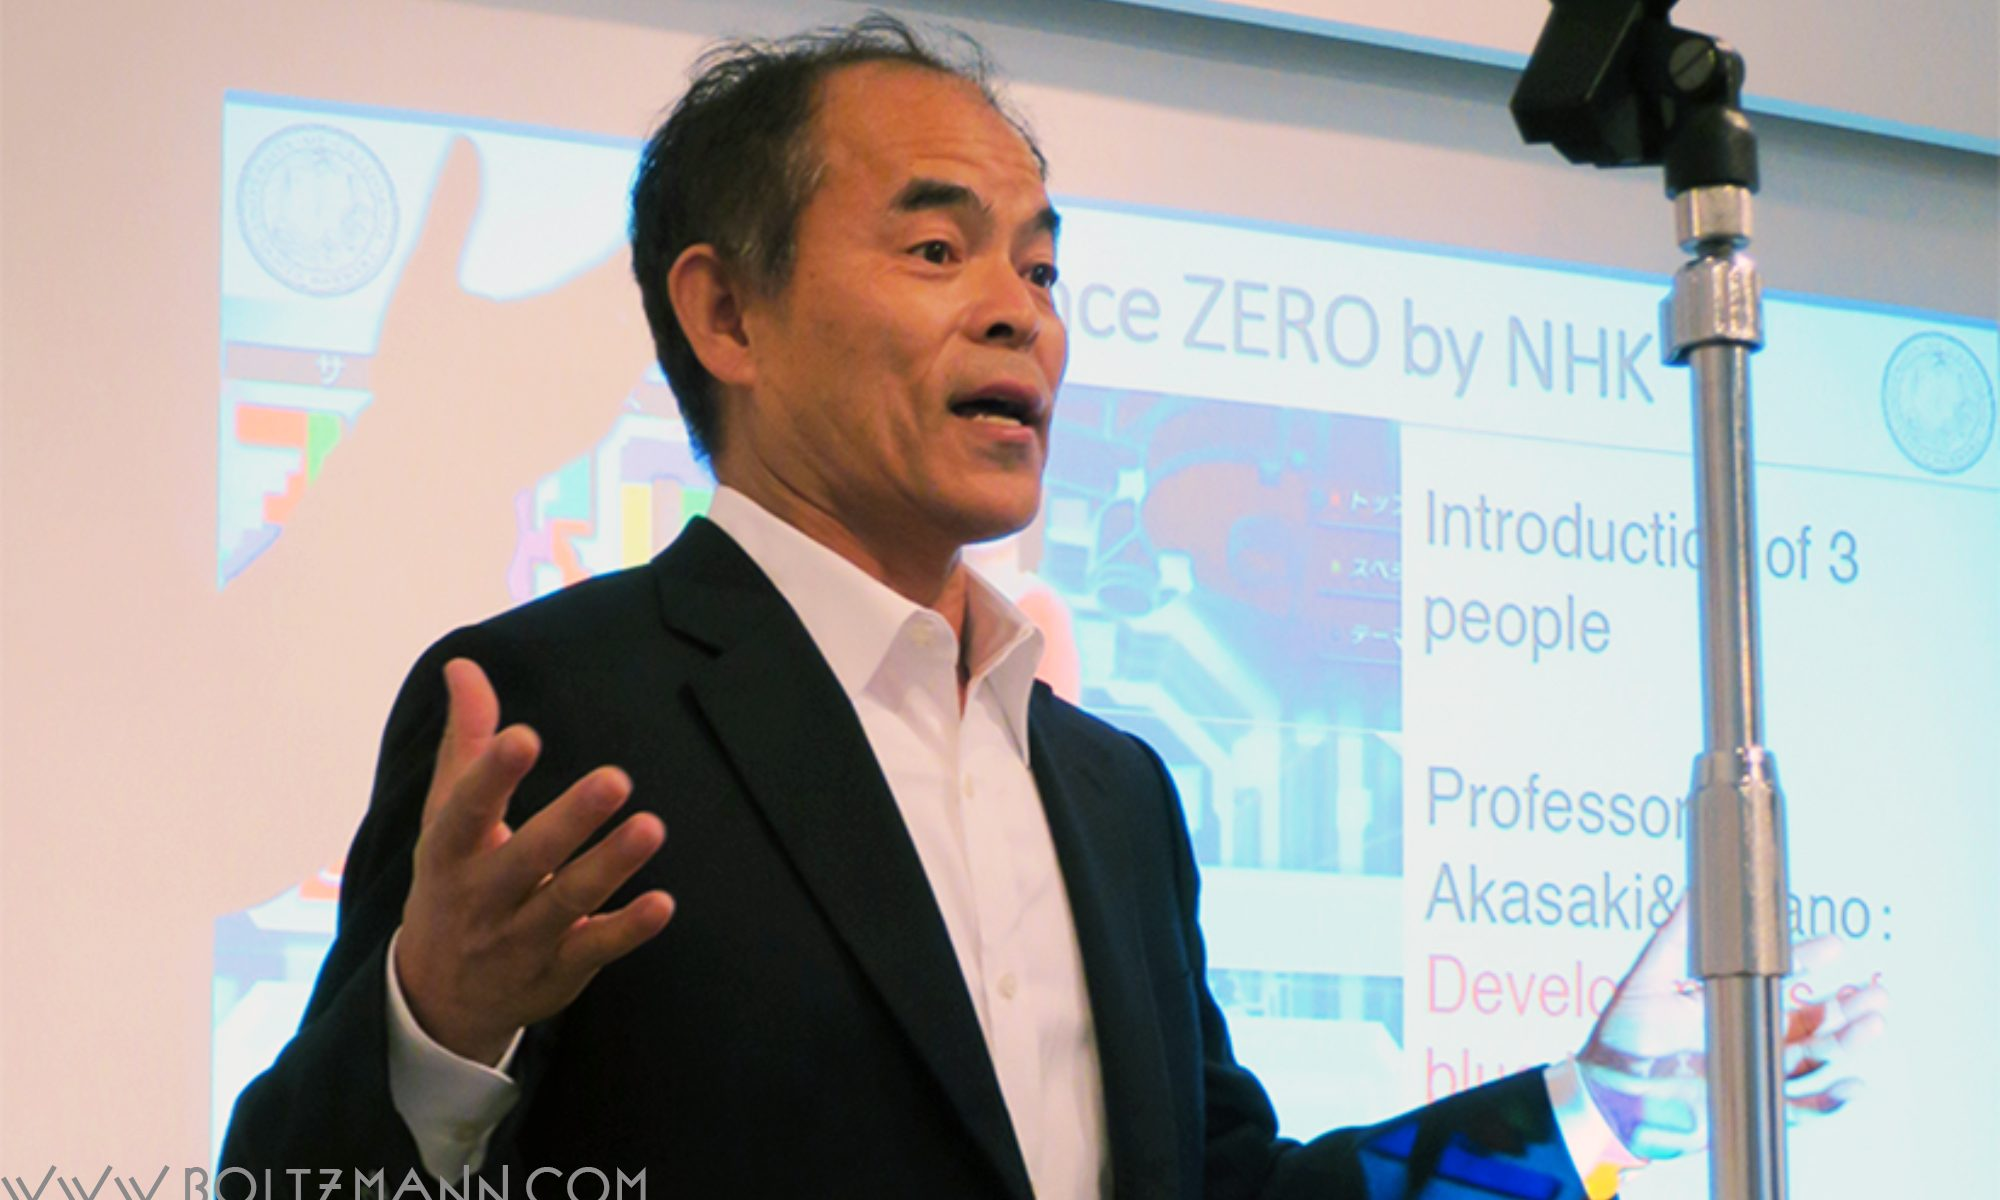 Shuji Nakamura, Nobel Prize in Physics 2014. Inventor of blue GaN LEDs and lasers. Professor, Solid State Lighting and Energy Electronics Center, Materials and ECE Departments, University of California, Santa Barbara, USA